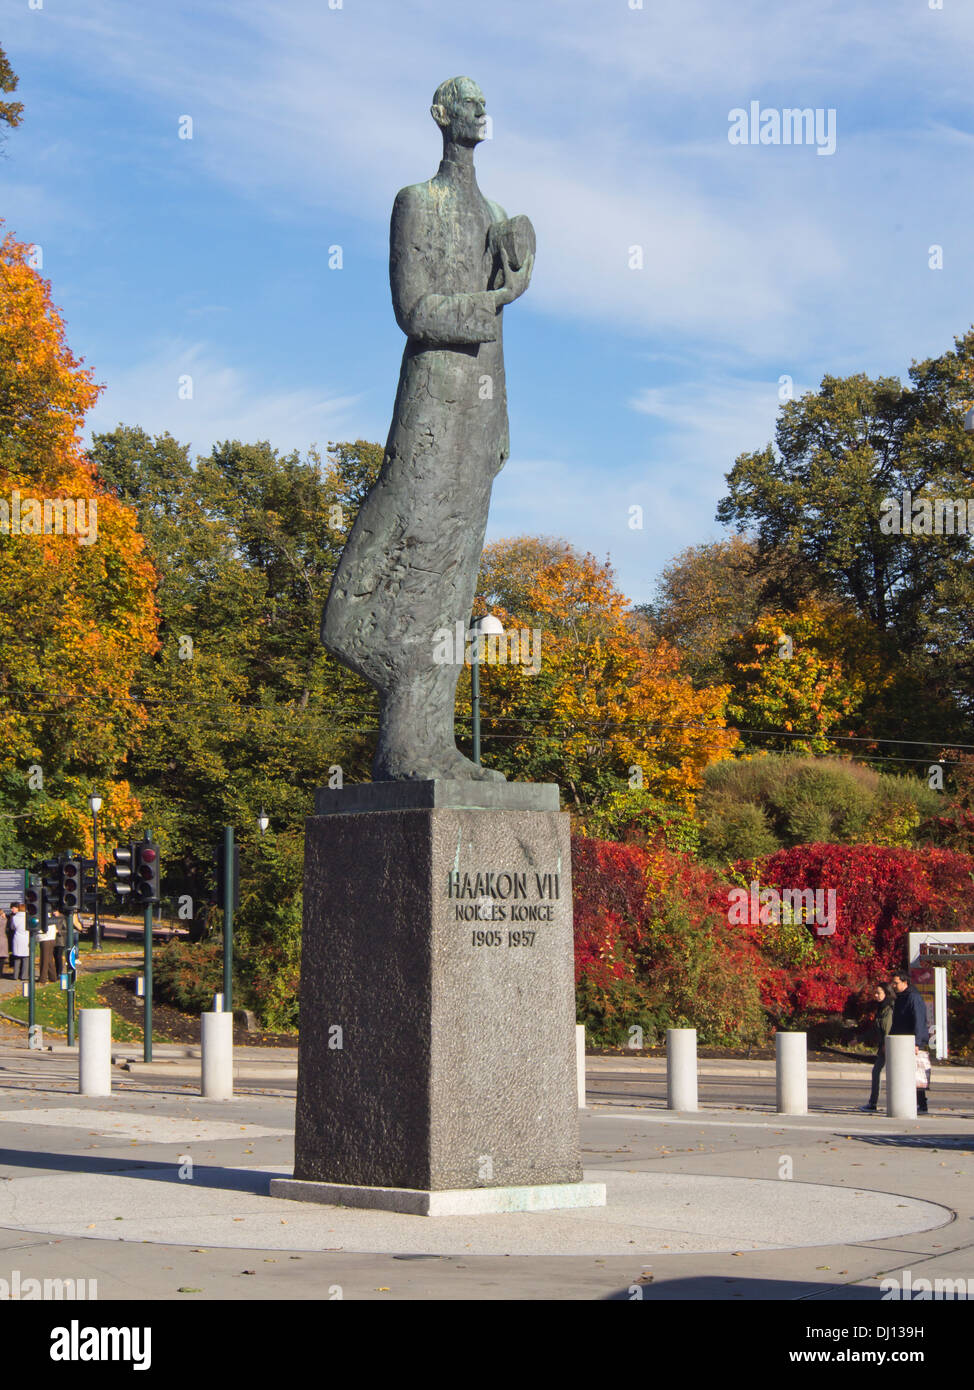 Statue of late Norwegian king Haakon VII by sculptor Nils Aas centrally placed in Oslo Norway Stock Photo